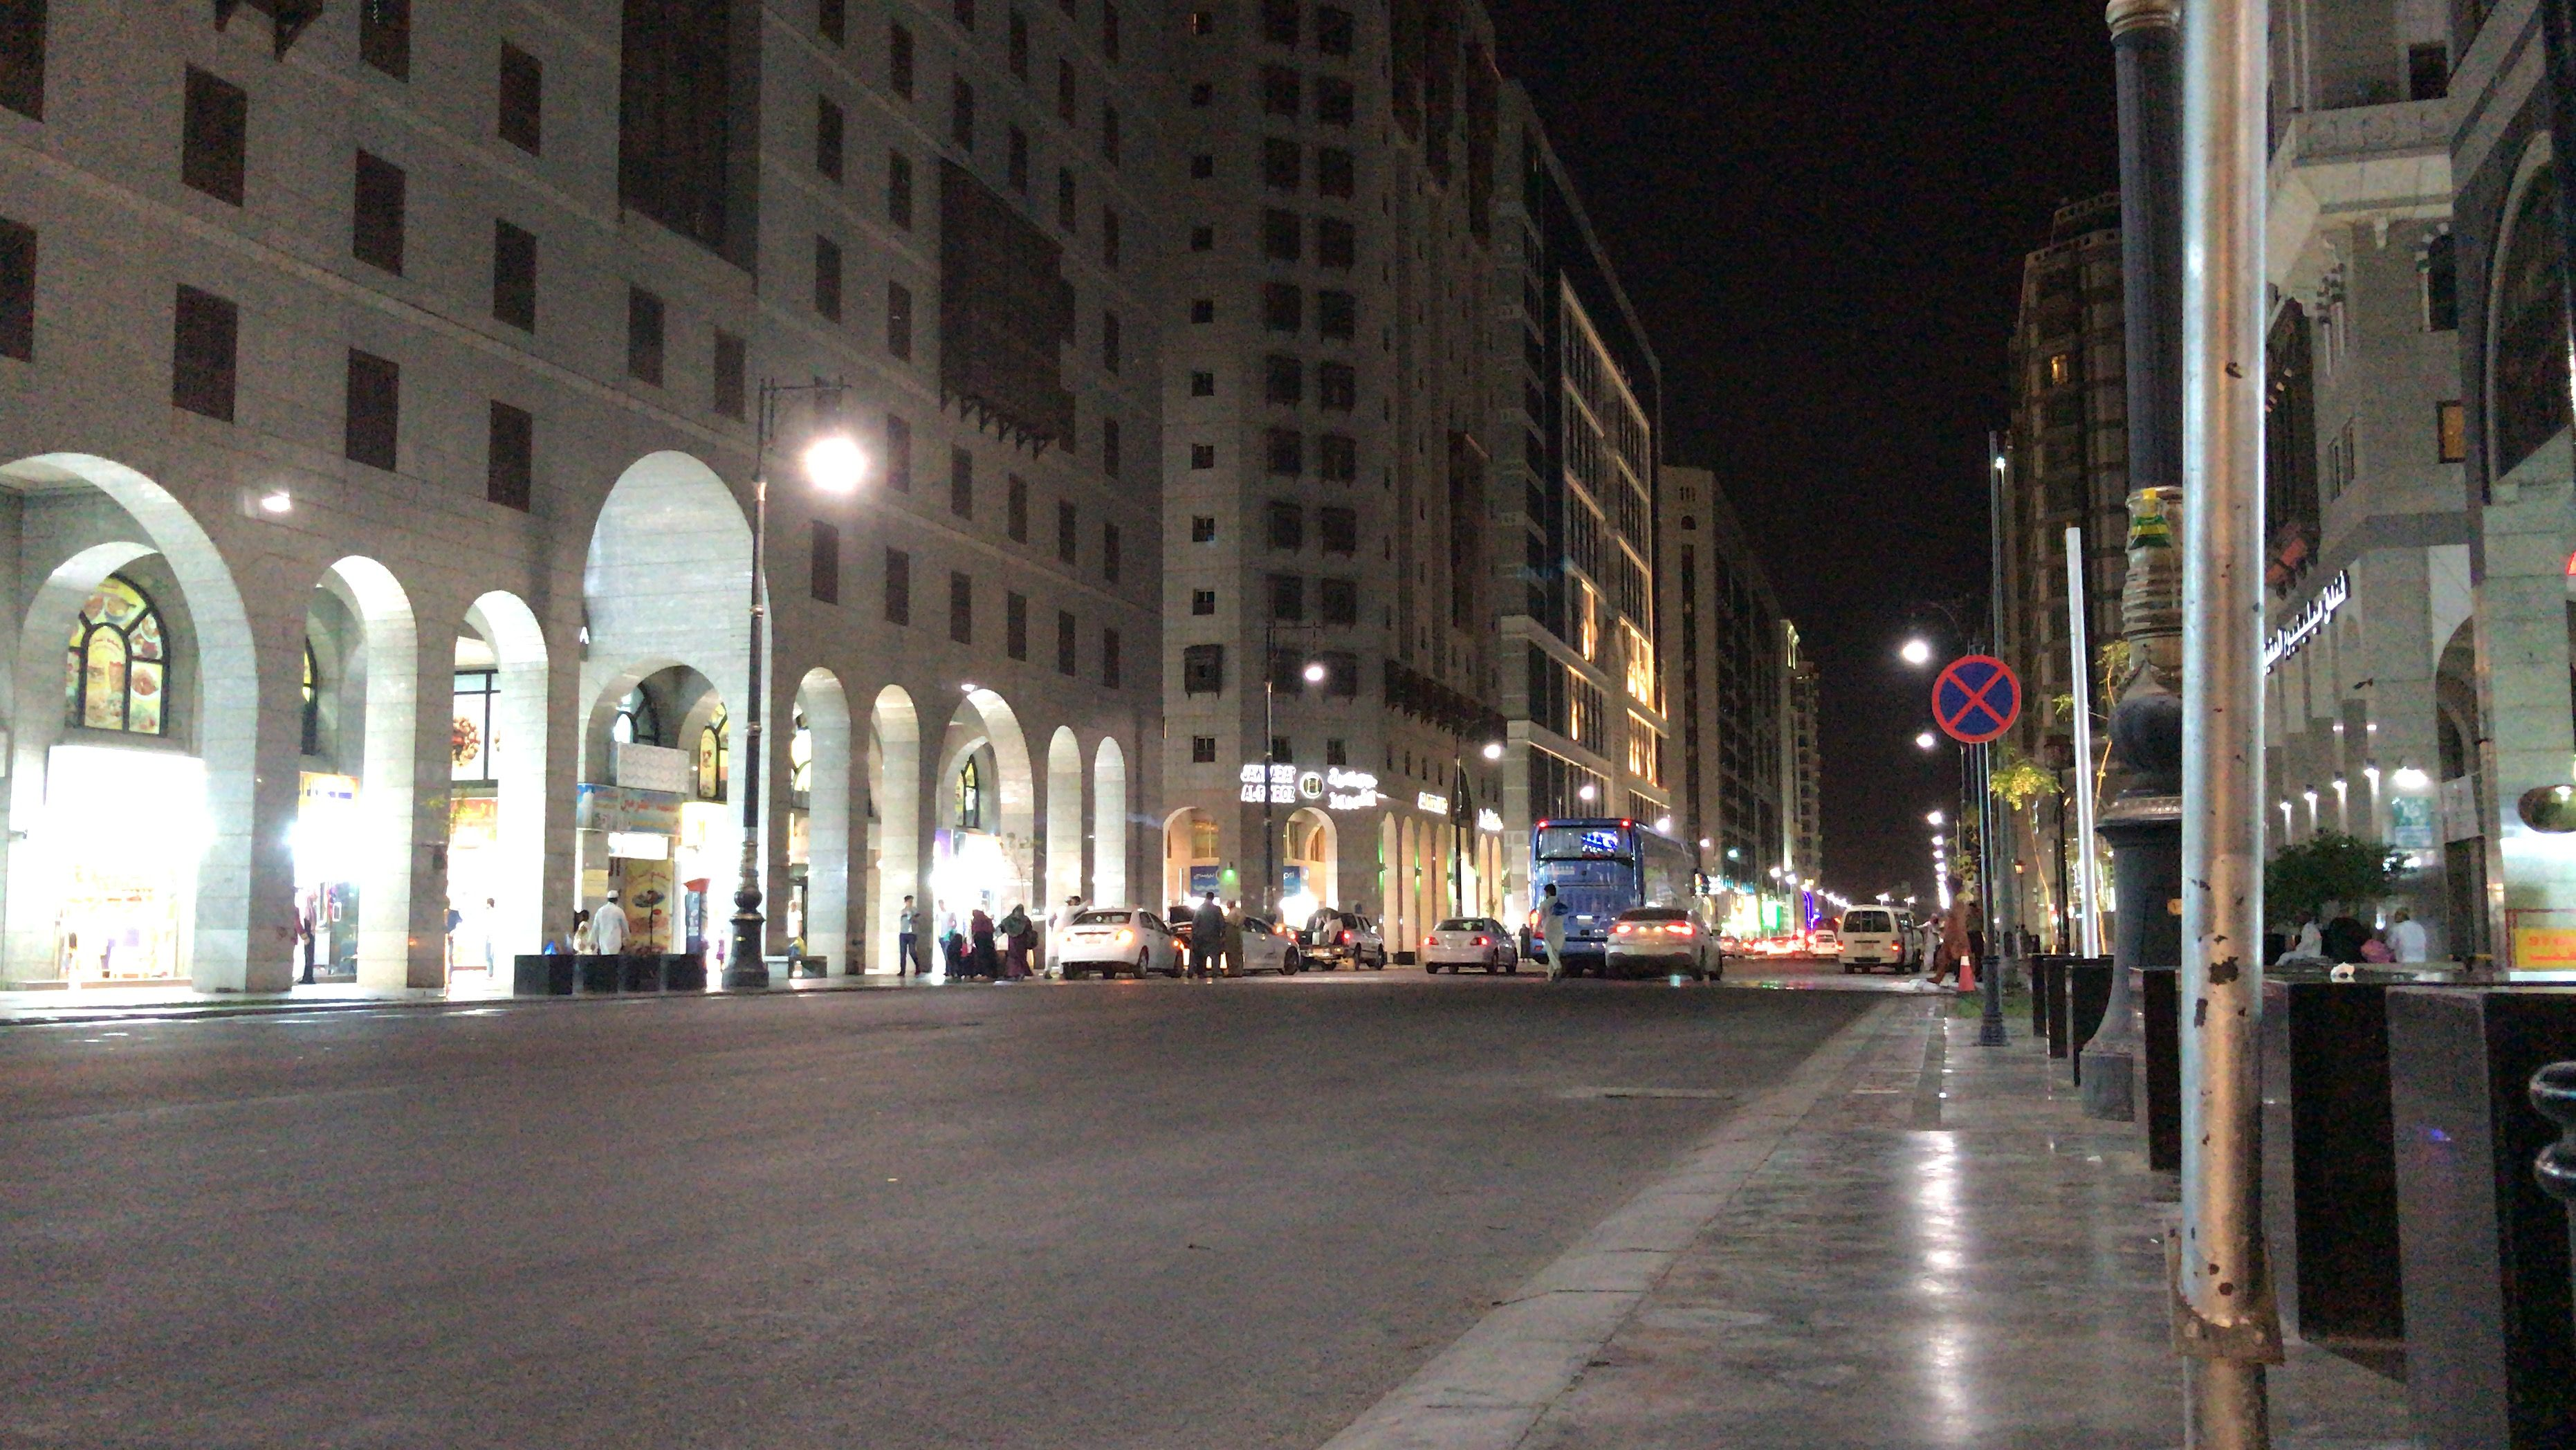 Pin By Habibbenzamerr On Madinah Night Street View Scenes Street